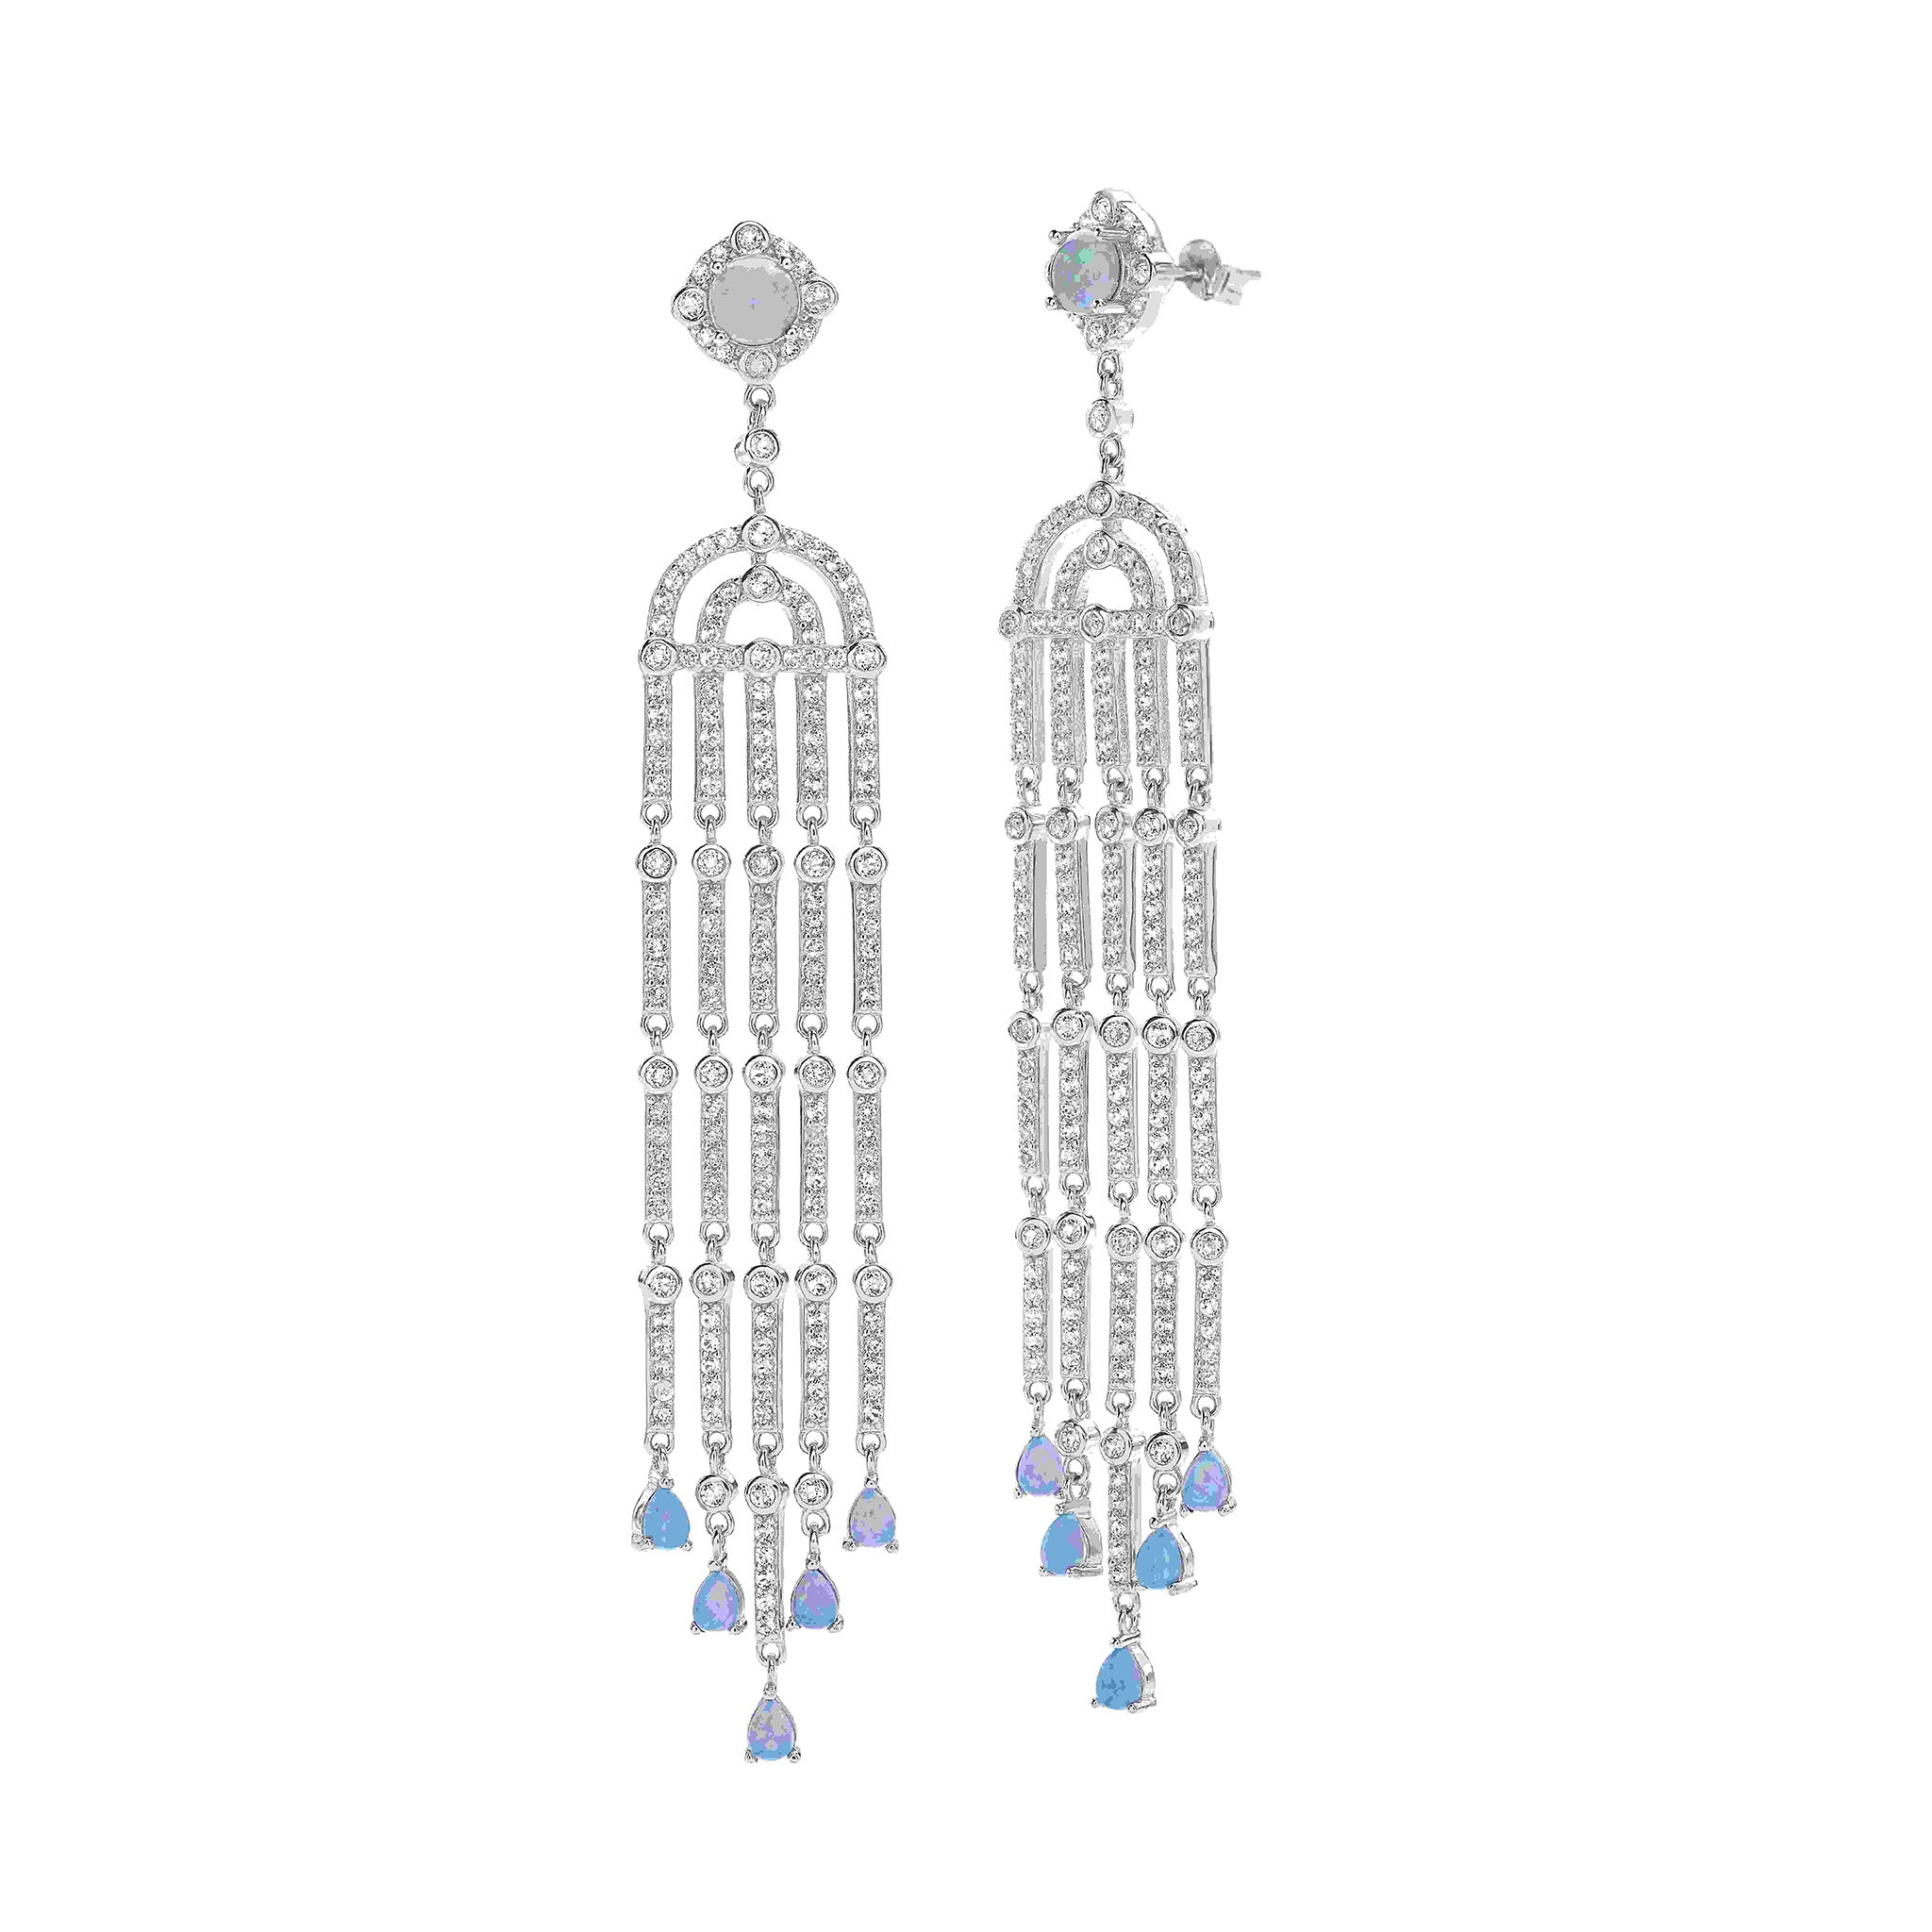 White Topaz Gemstones and Created Opal long Sterling Silver Earrings